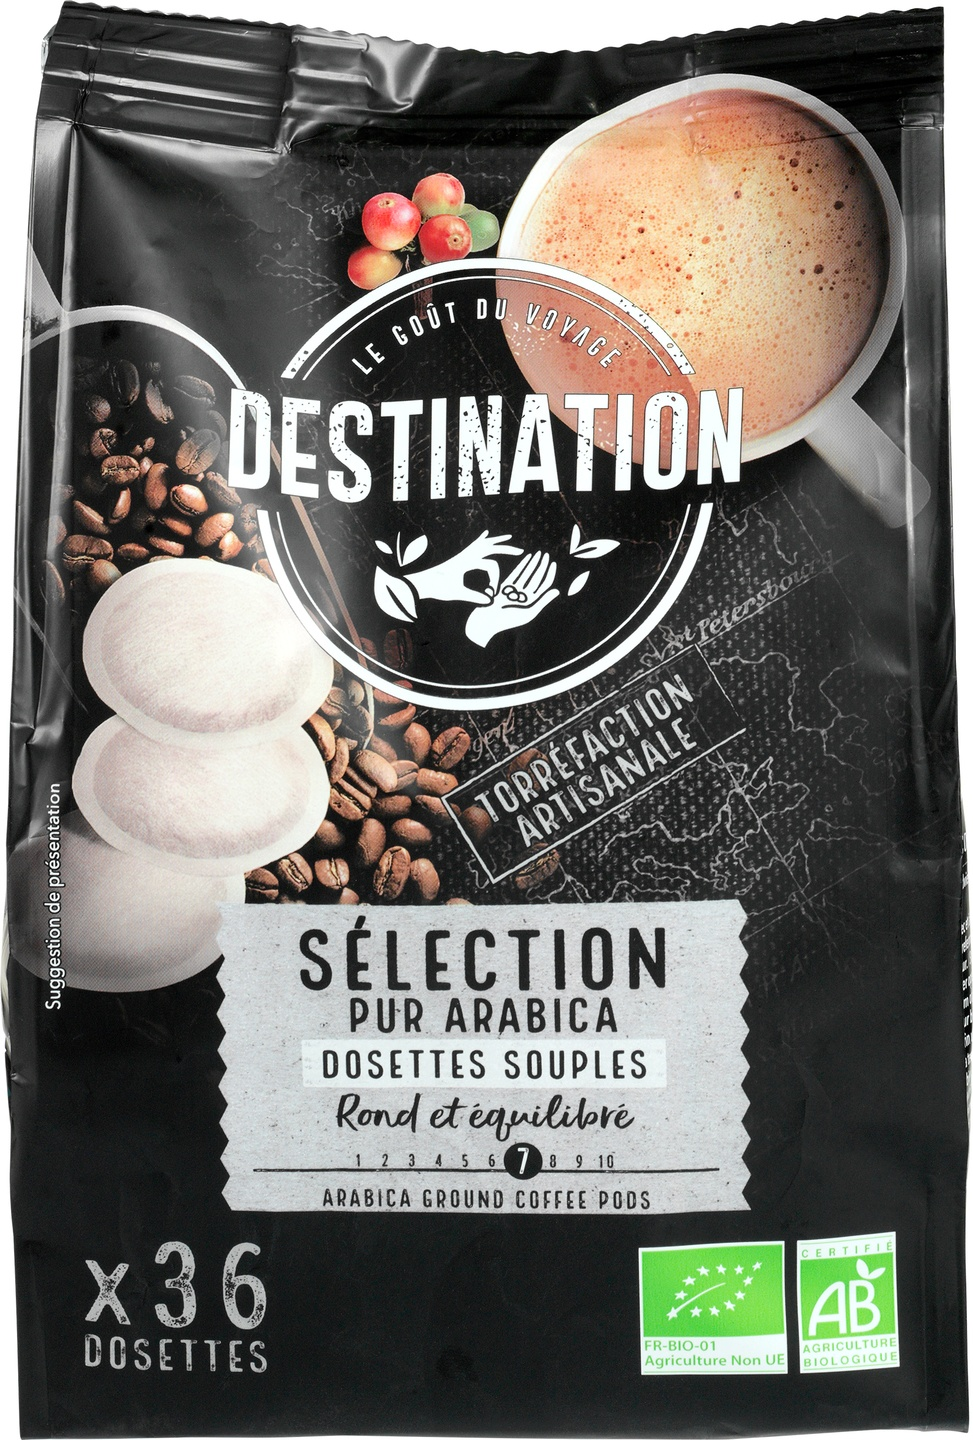 Biologische Destination Koffiepads selection 36 st